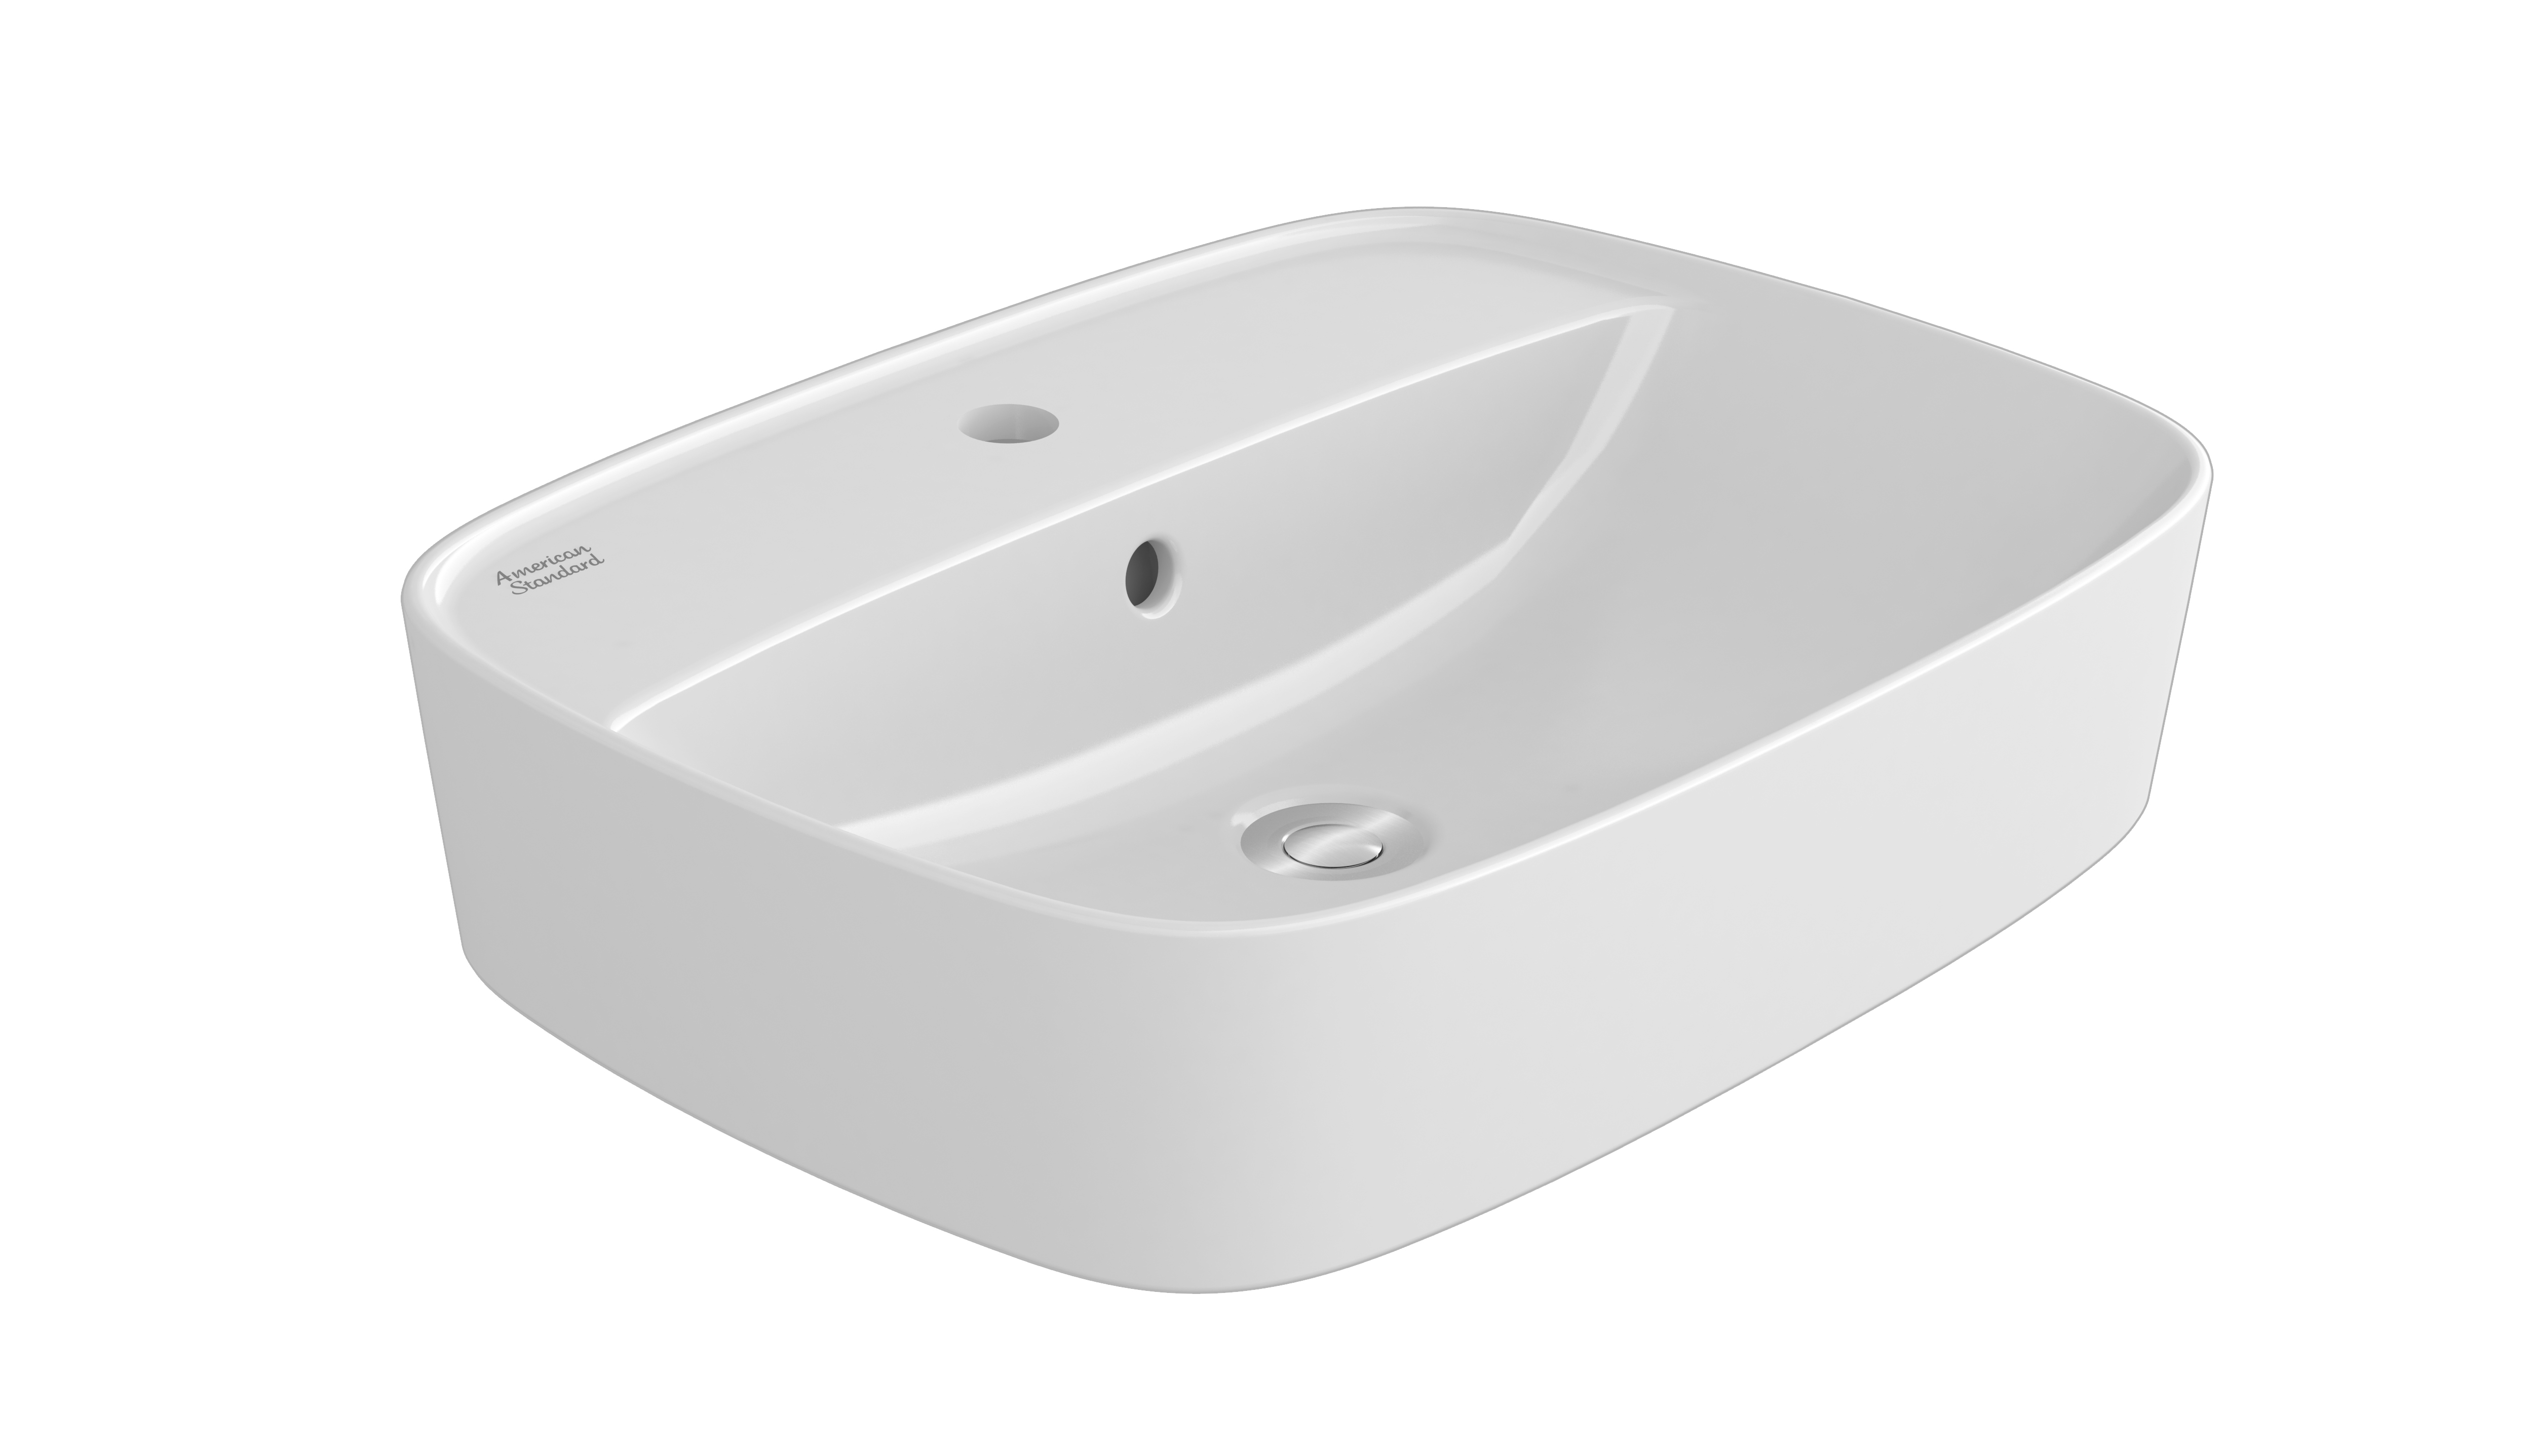 Signature 550mm Vessel w Deck-Have overf